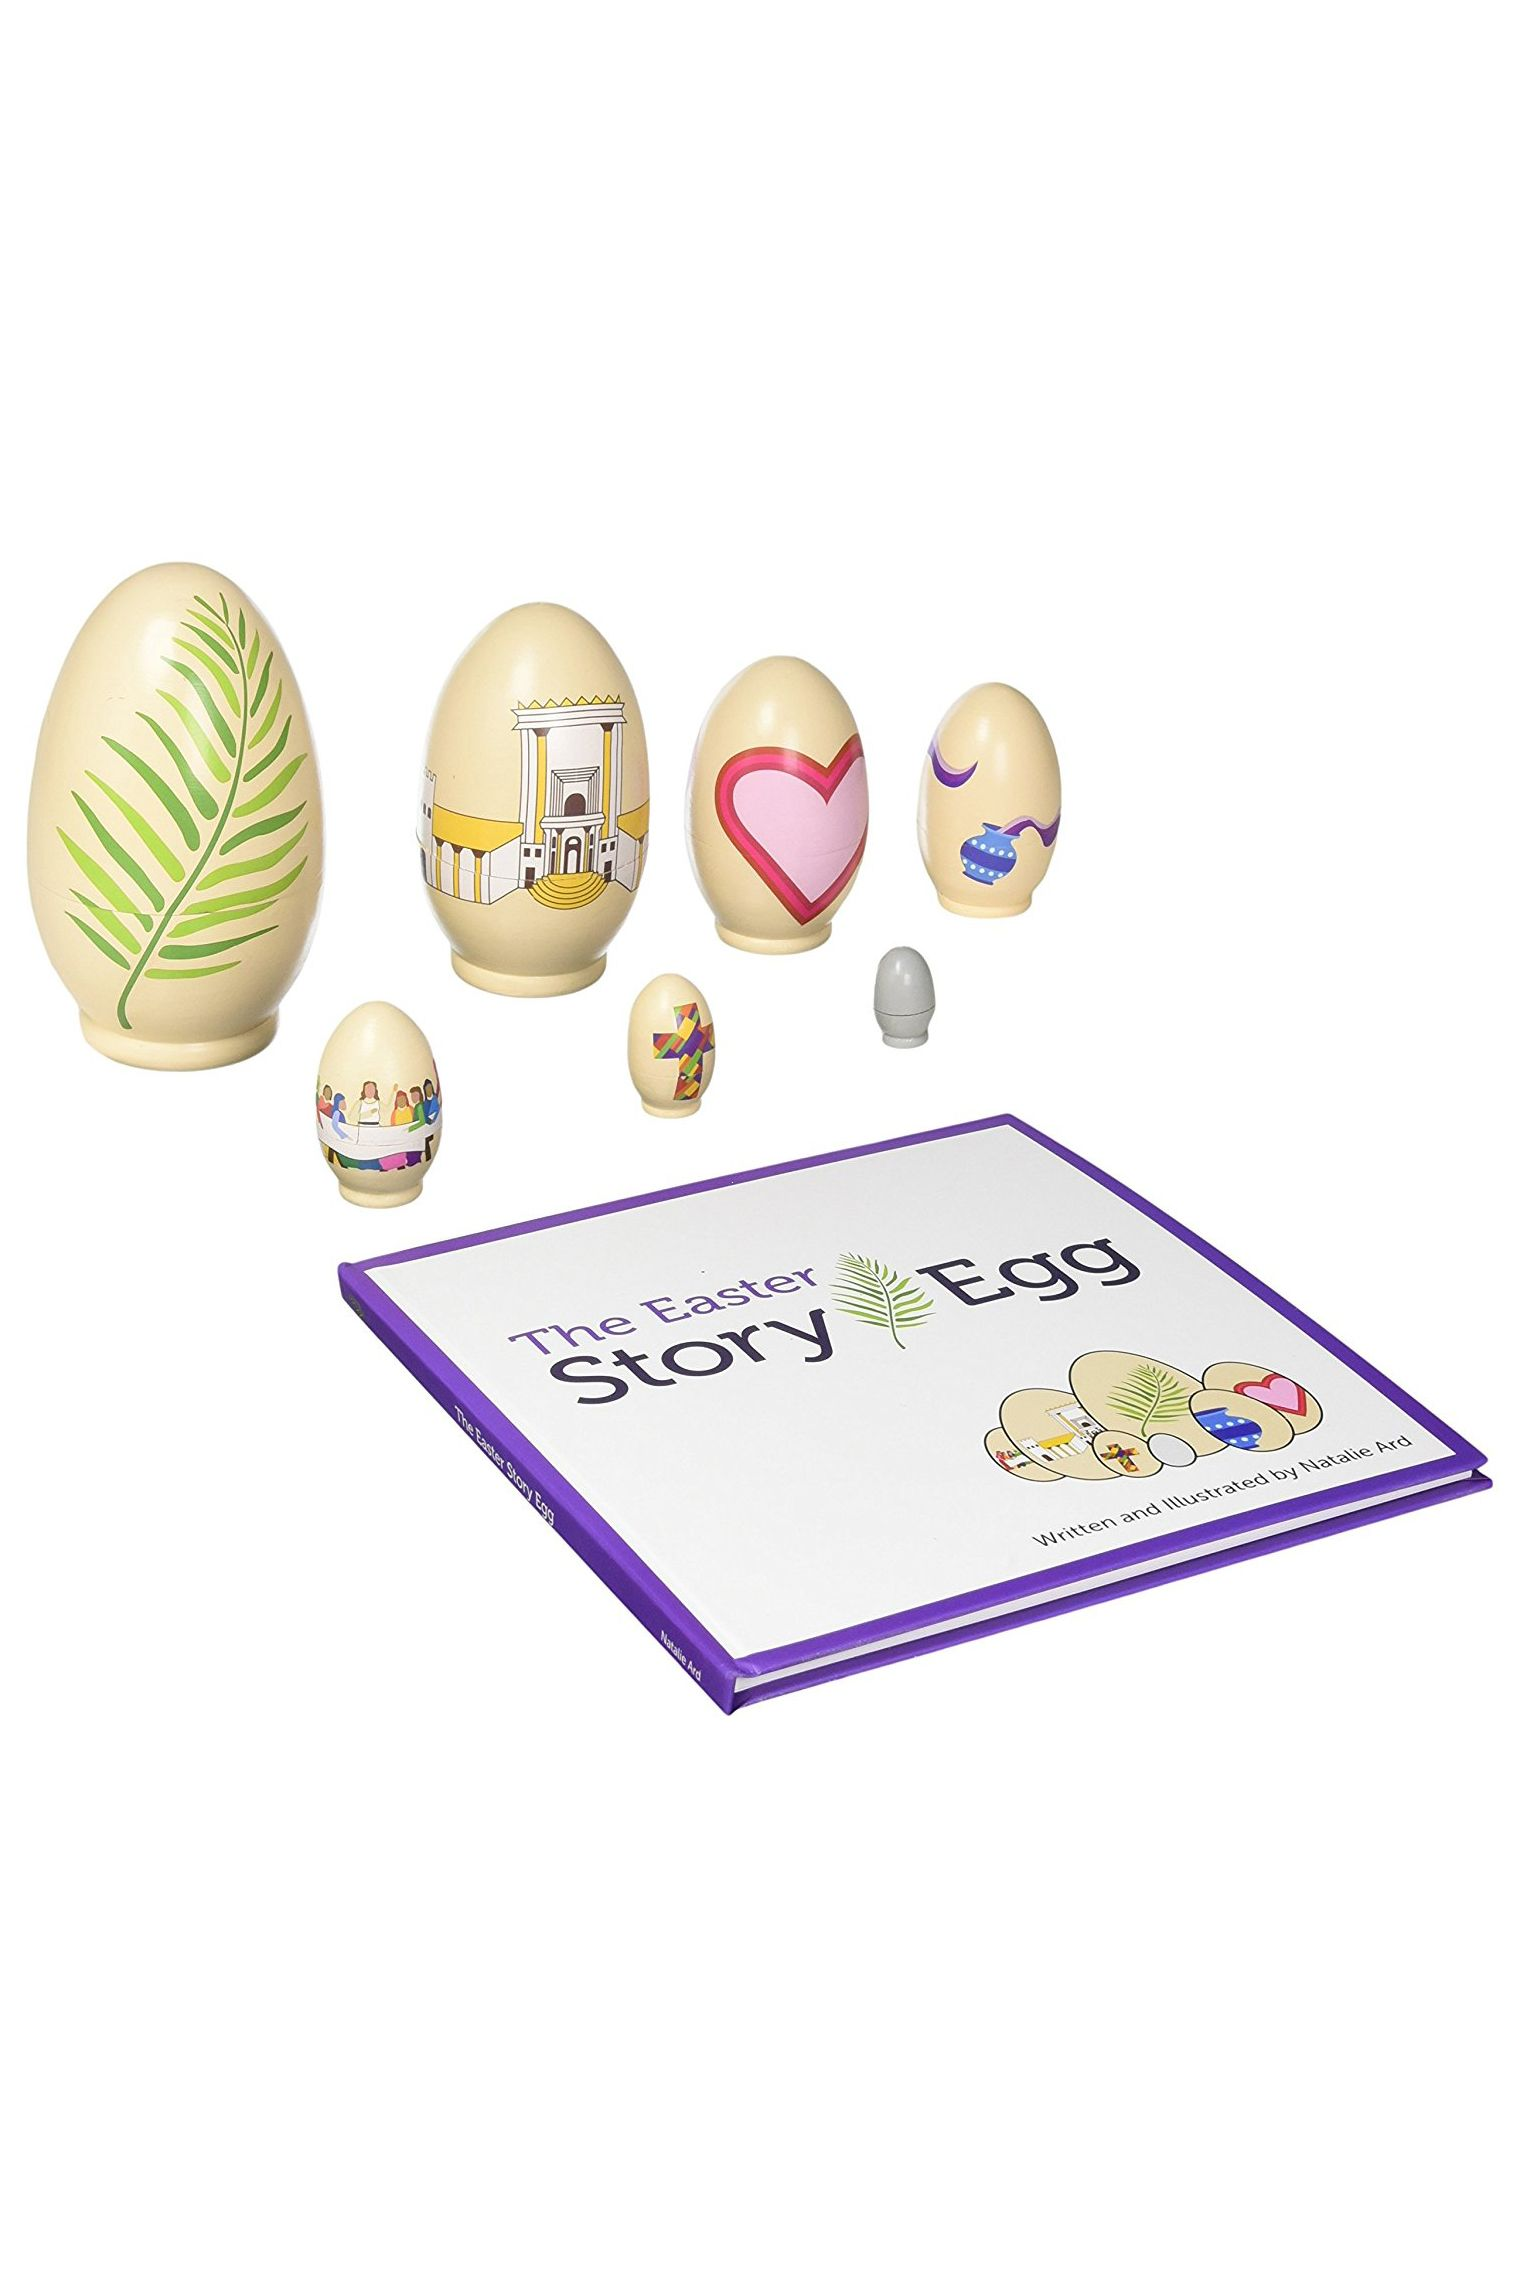 15 unique christian gifts for women men and kids religious easter 15 unique christian gifts for women men and kids religious easter basket stuffer ideas negle Gallery